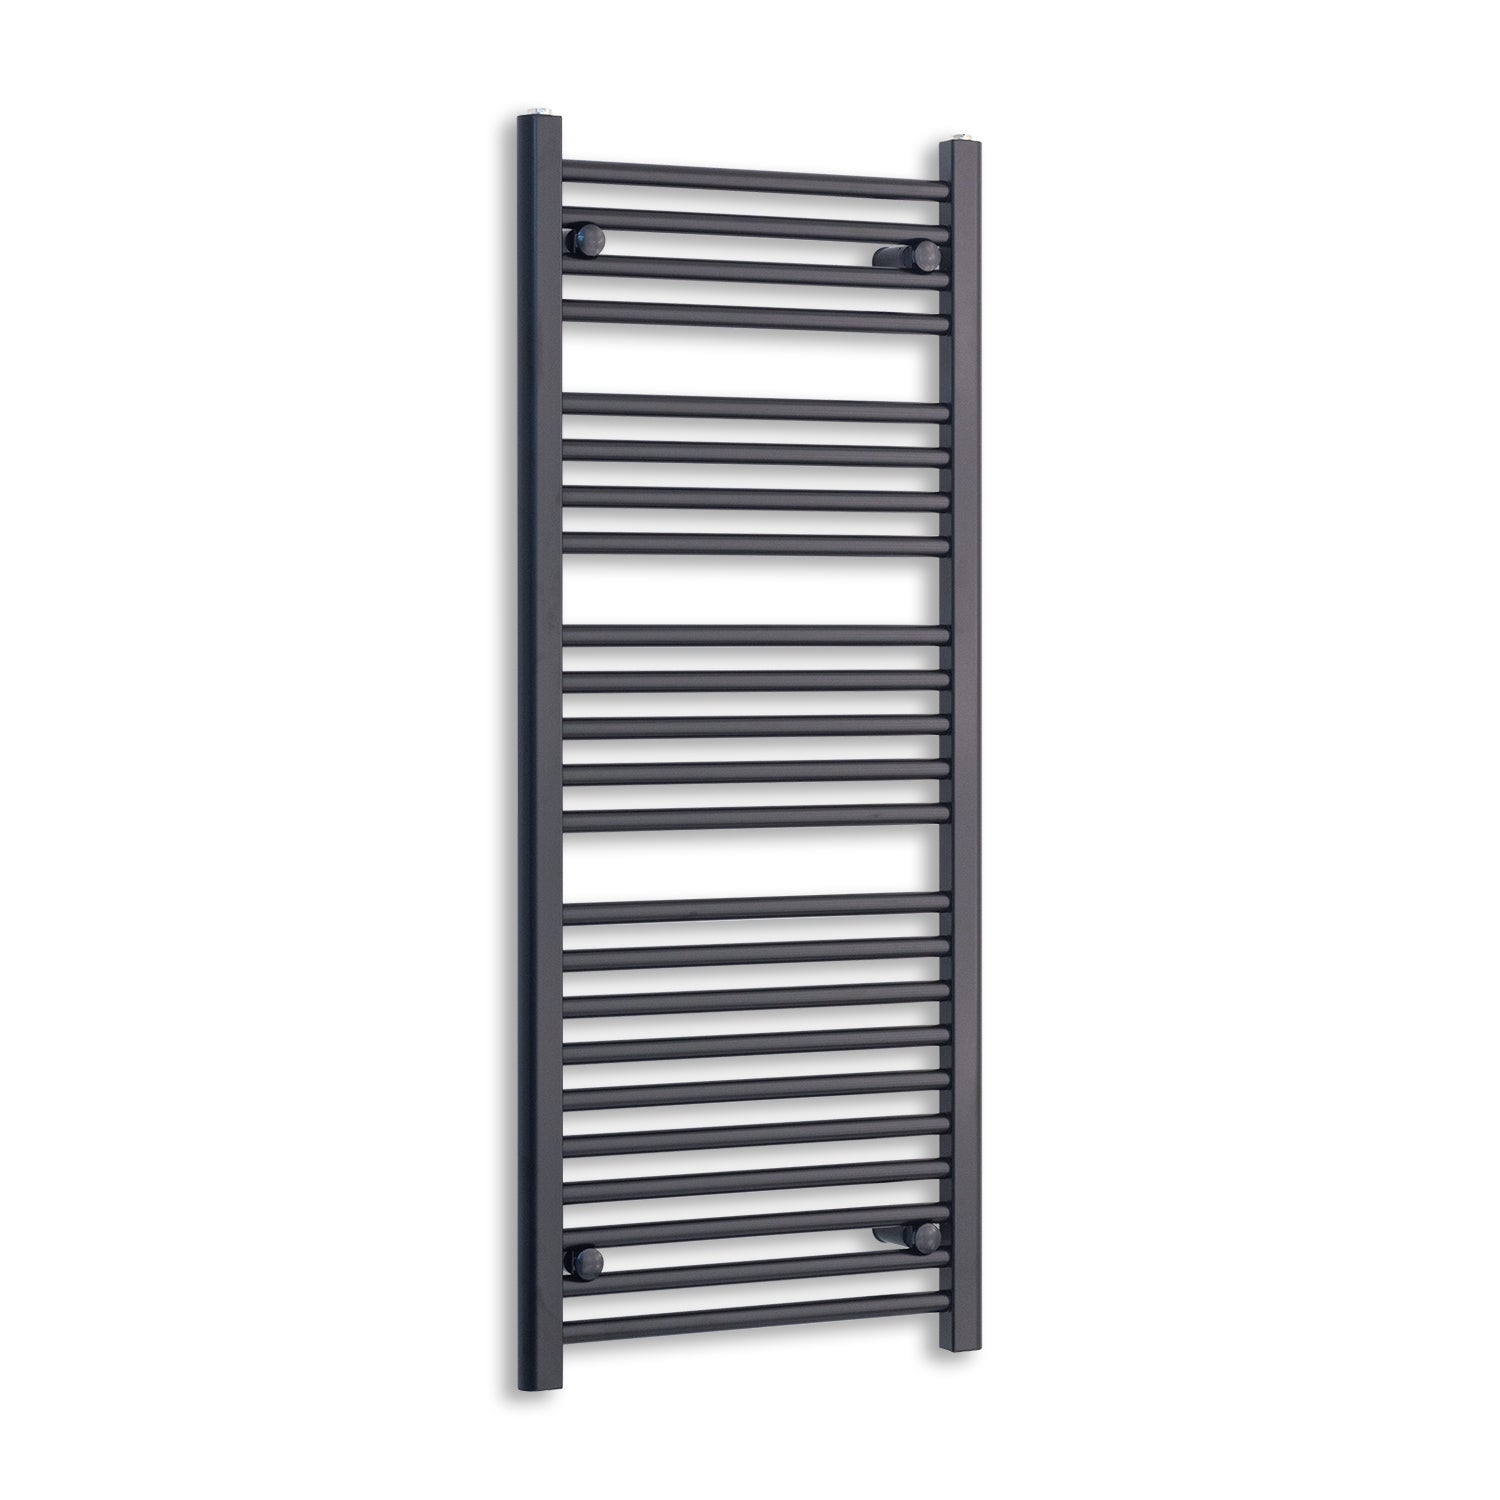 600mm Wide 1200mm High Black Towel Rail Radiator